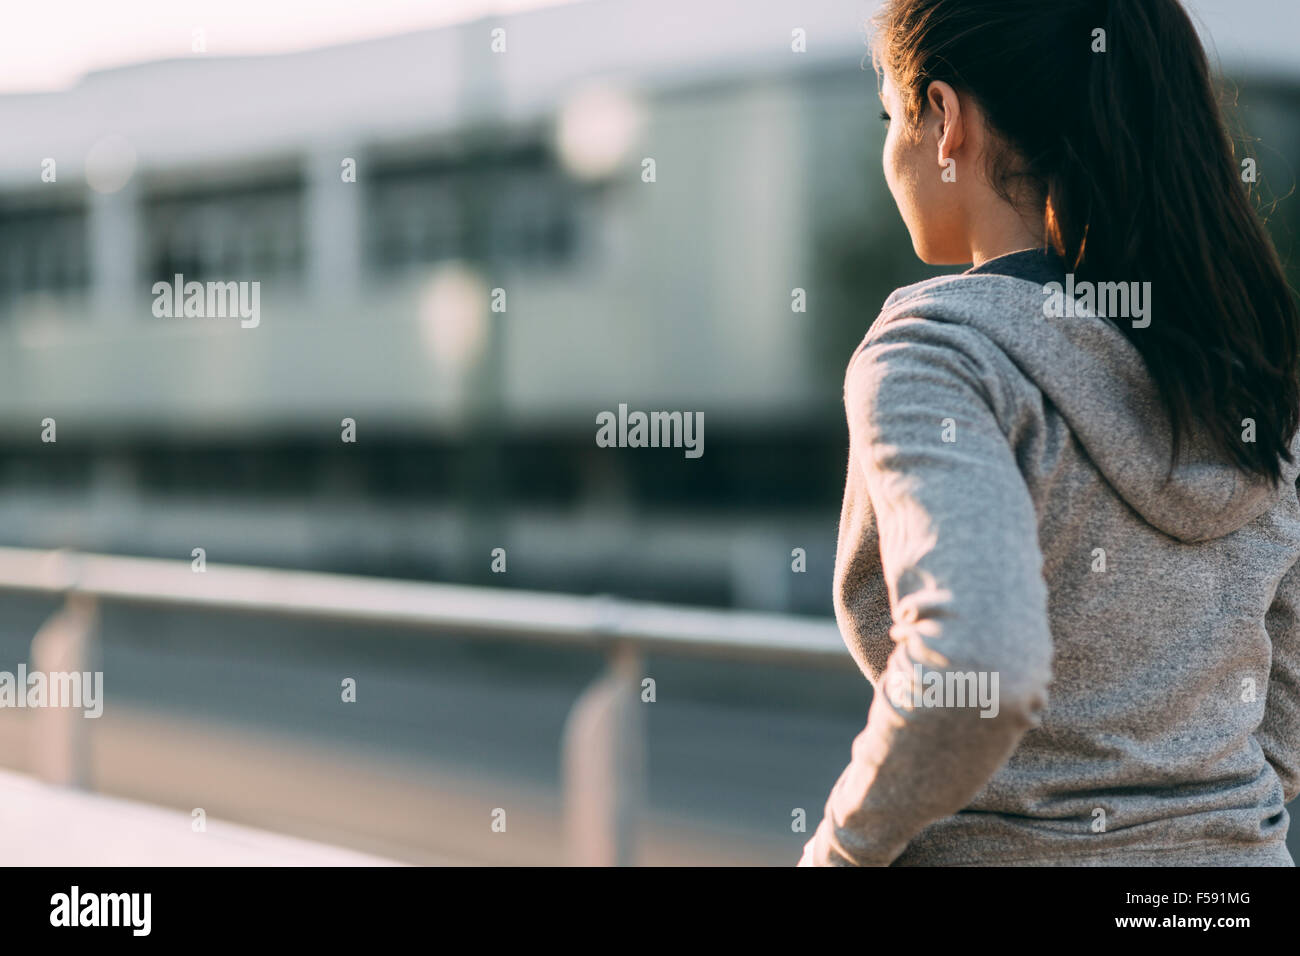 Woman jogging in city and keeping her body in shape - Stock Image